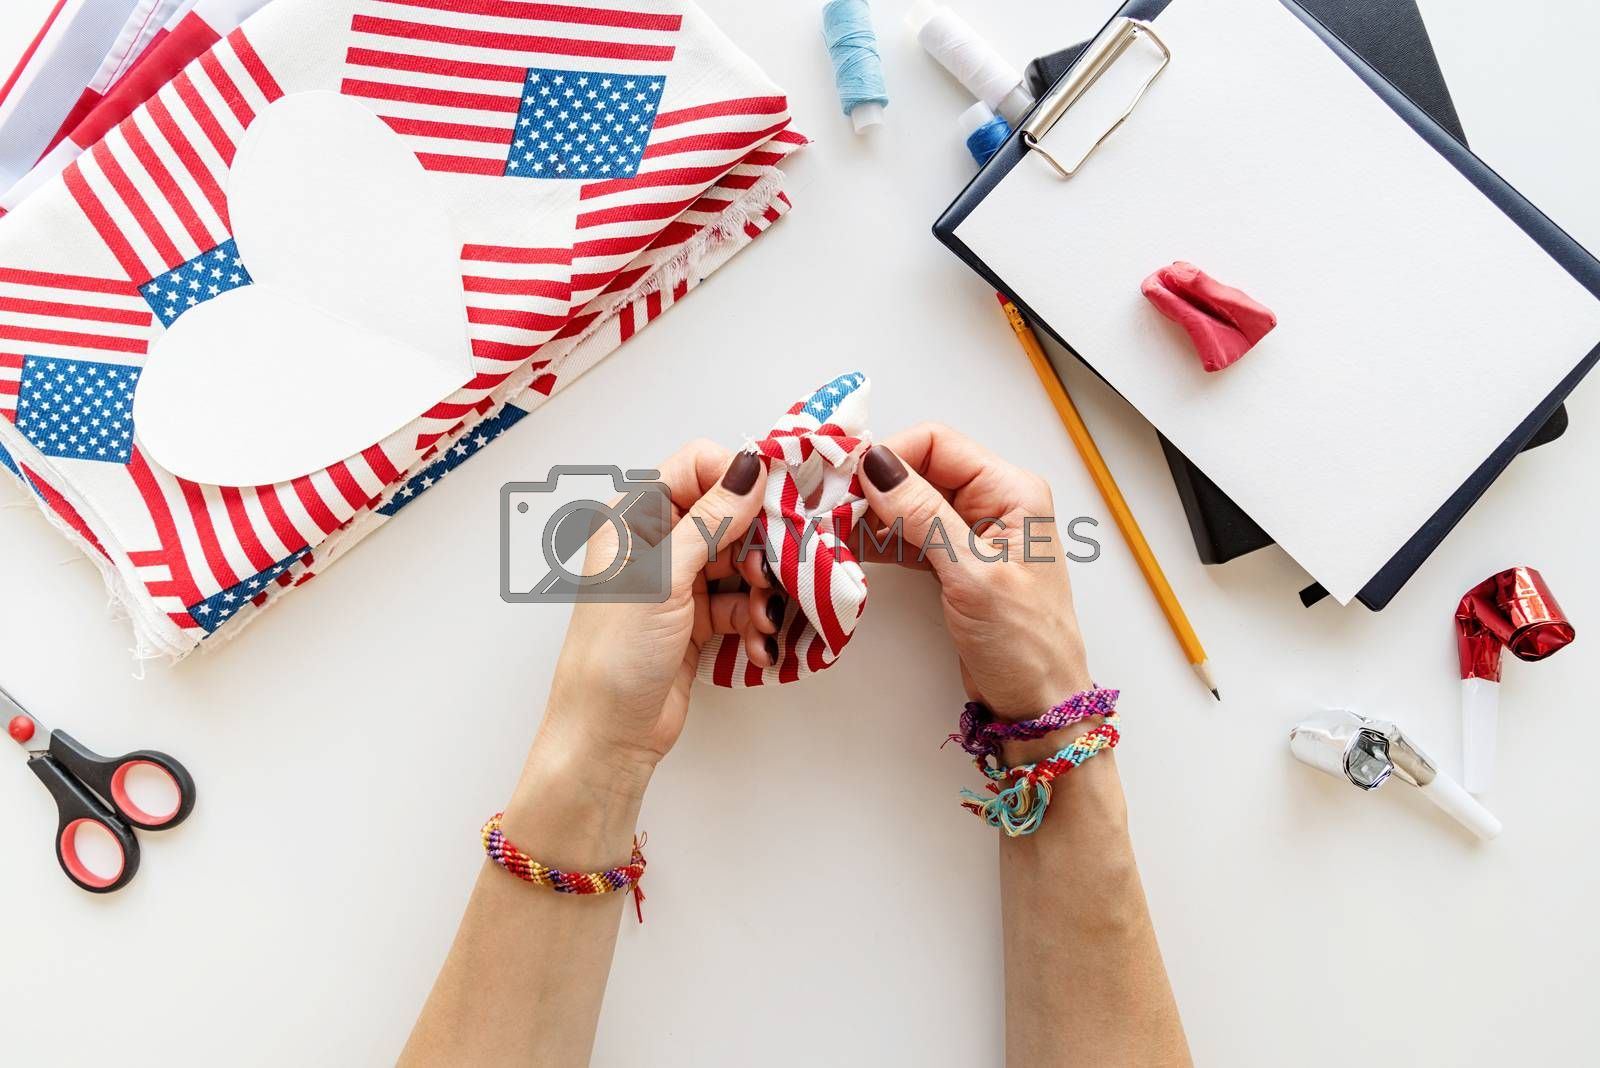 USA Independence Day DIY craft. DIY 4th of July step by step needle holder craft. Step 7 - turning the pin cushion cover out